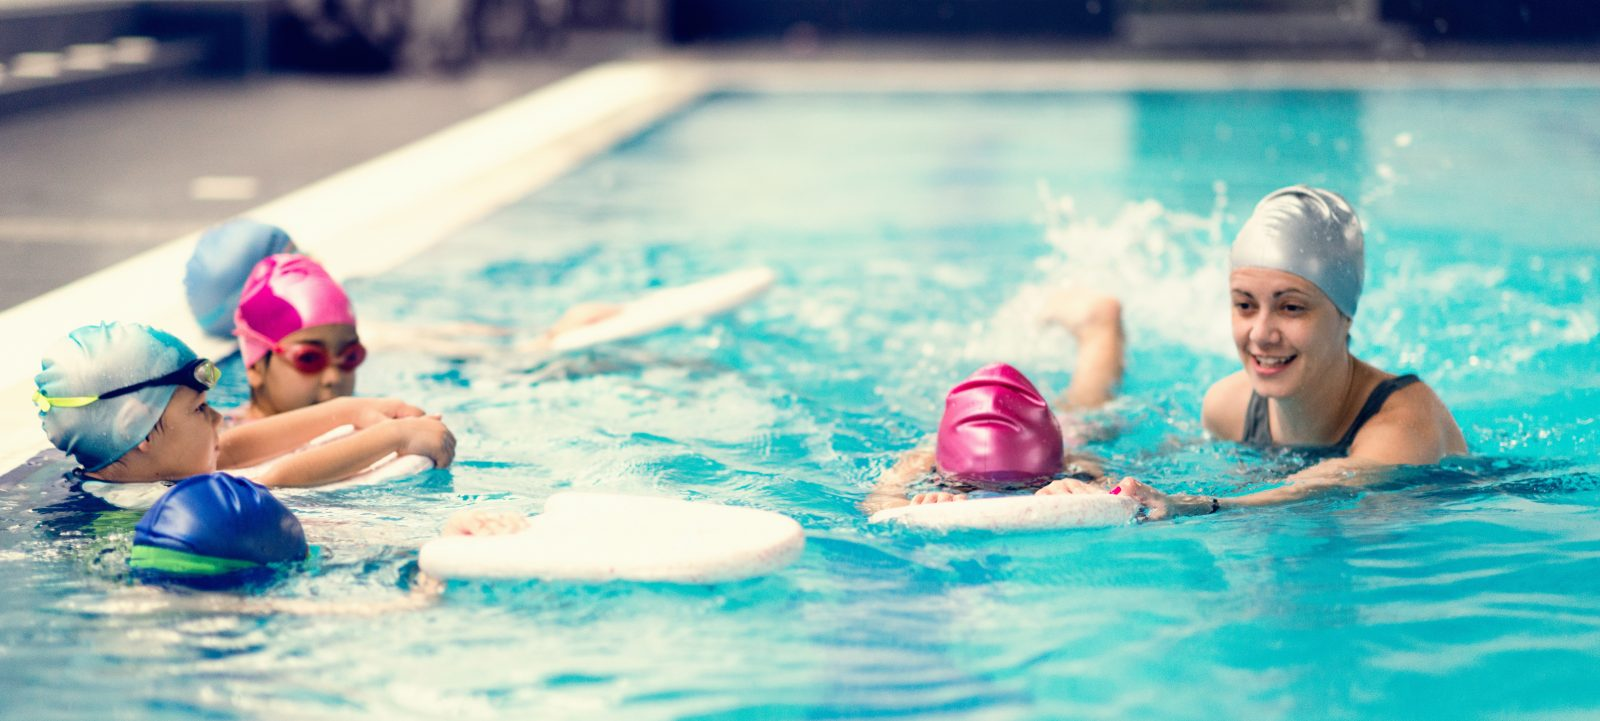 Swimming Lessons And Summer Fun